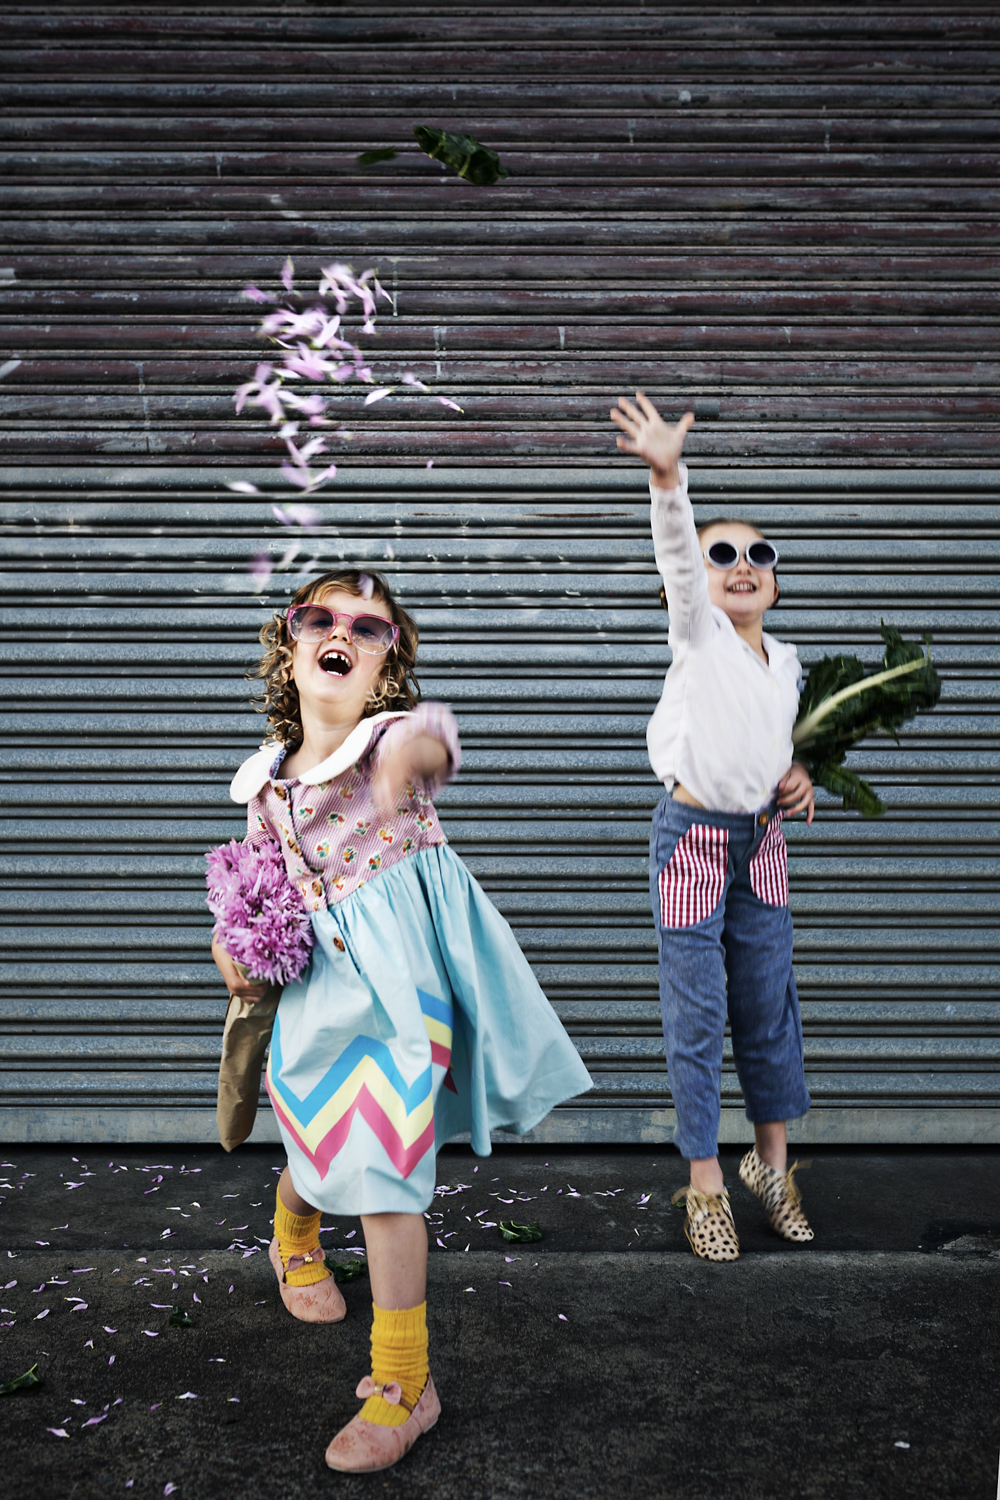 Girls throw flower petals in the air during fun kids commercial